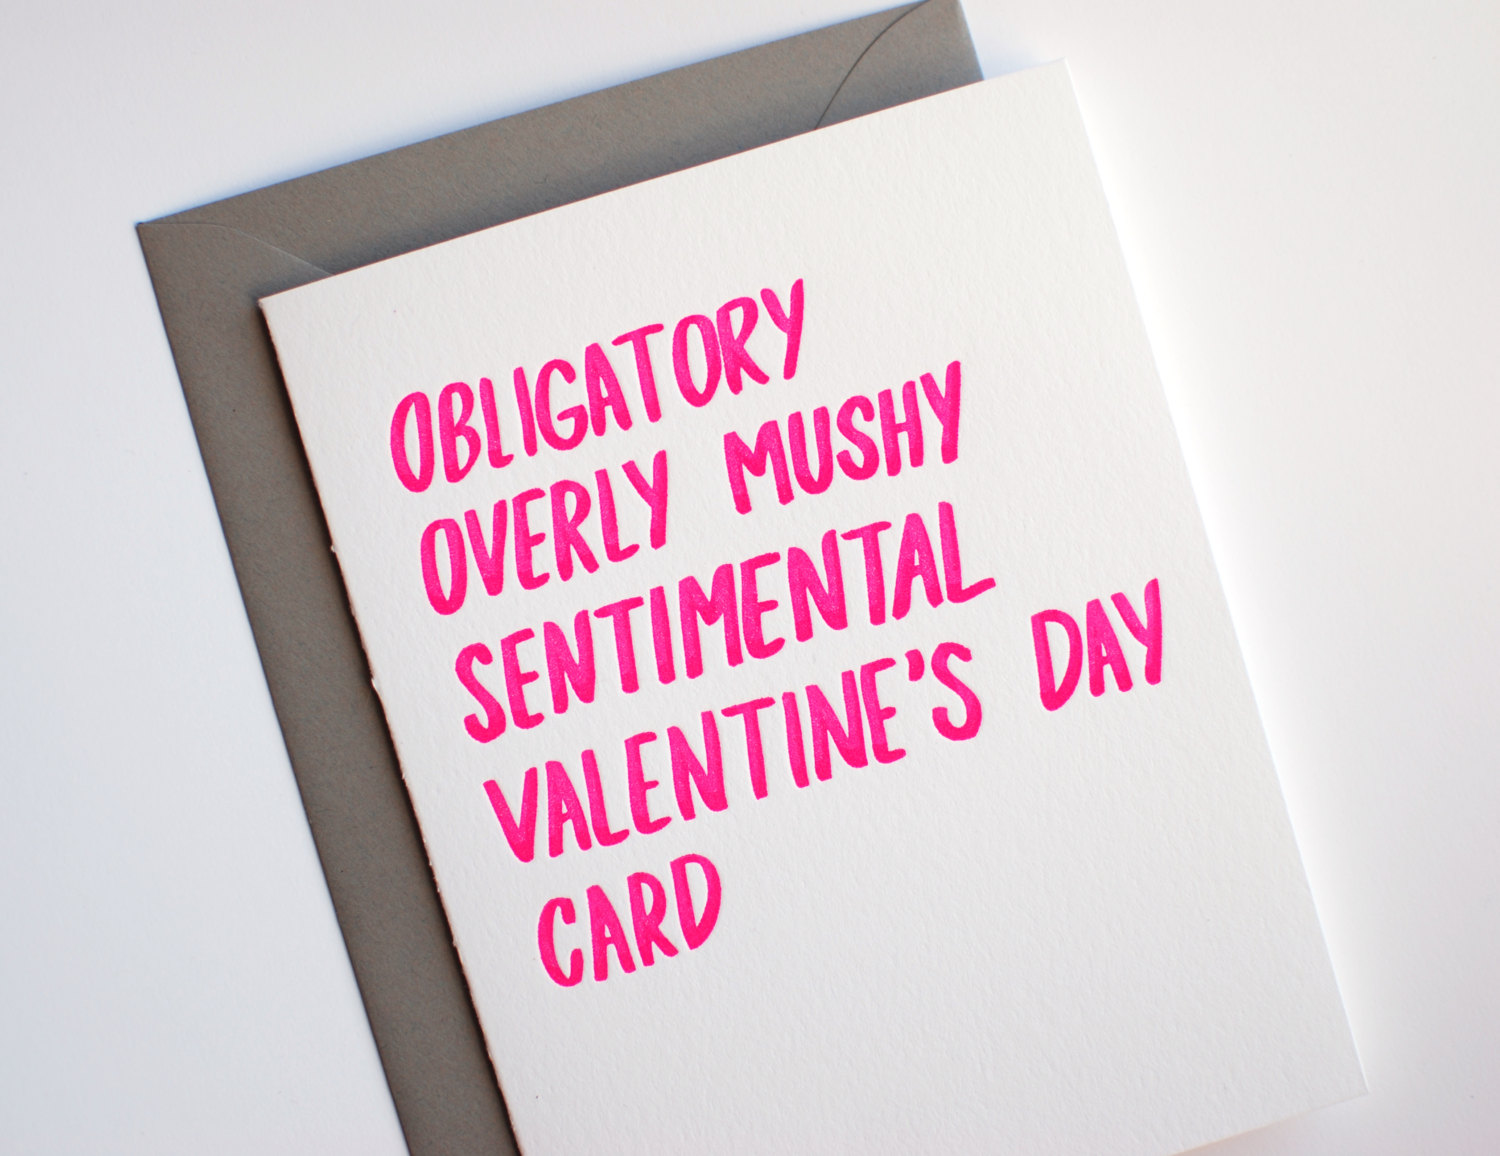 we know your youtube boyfriend based on these valentines cards playbuzz